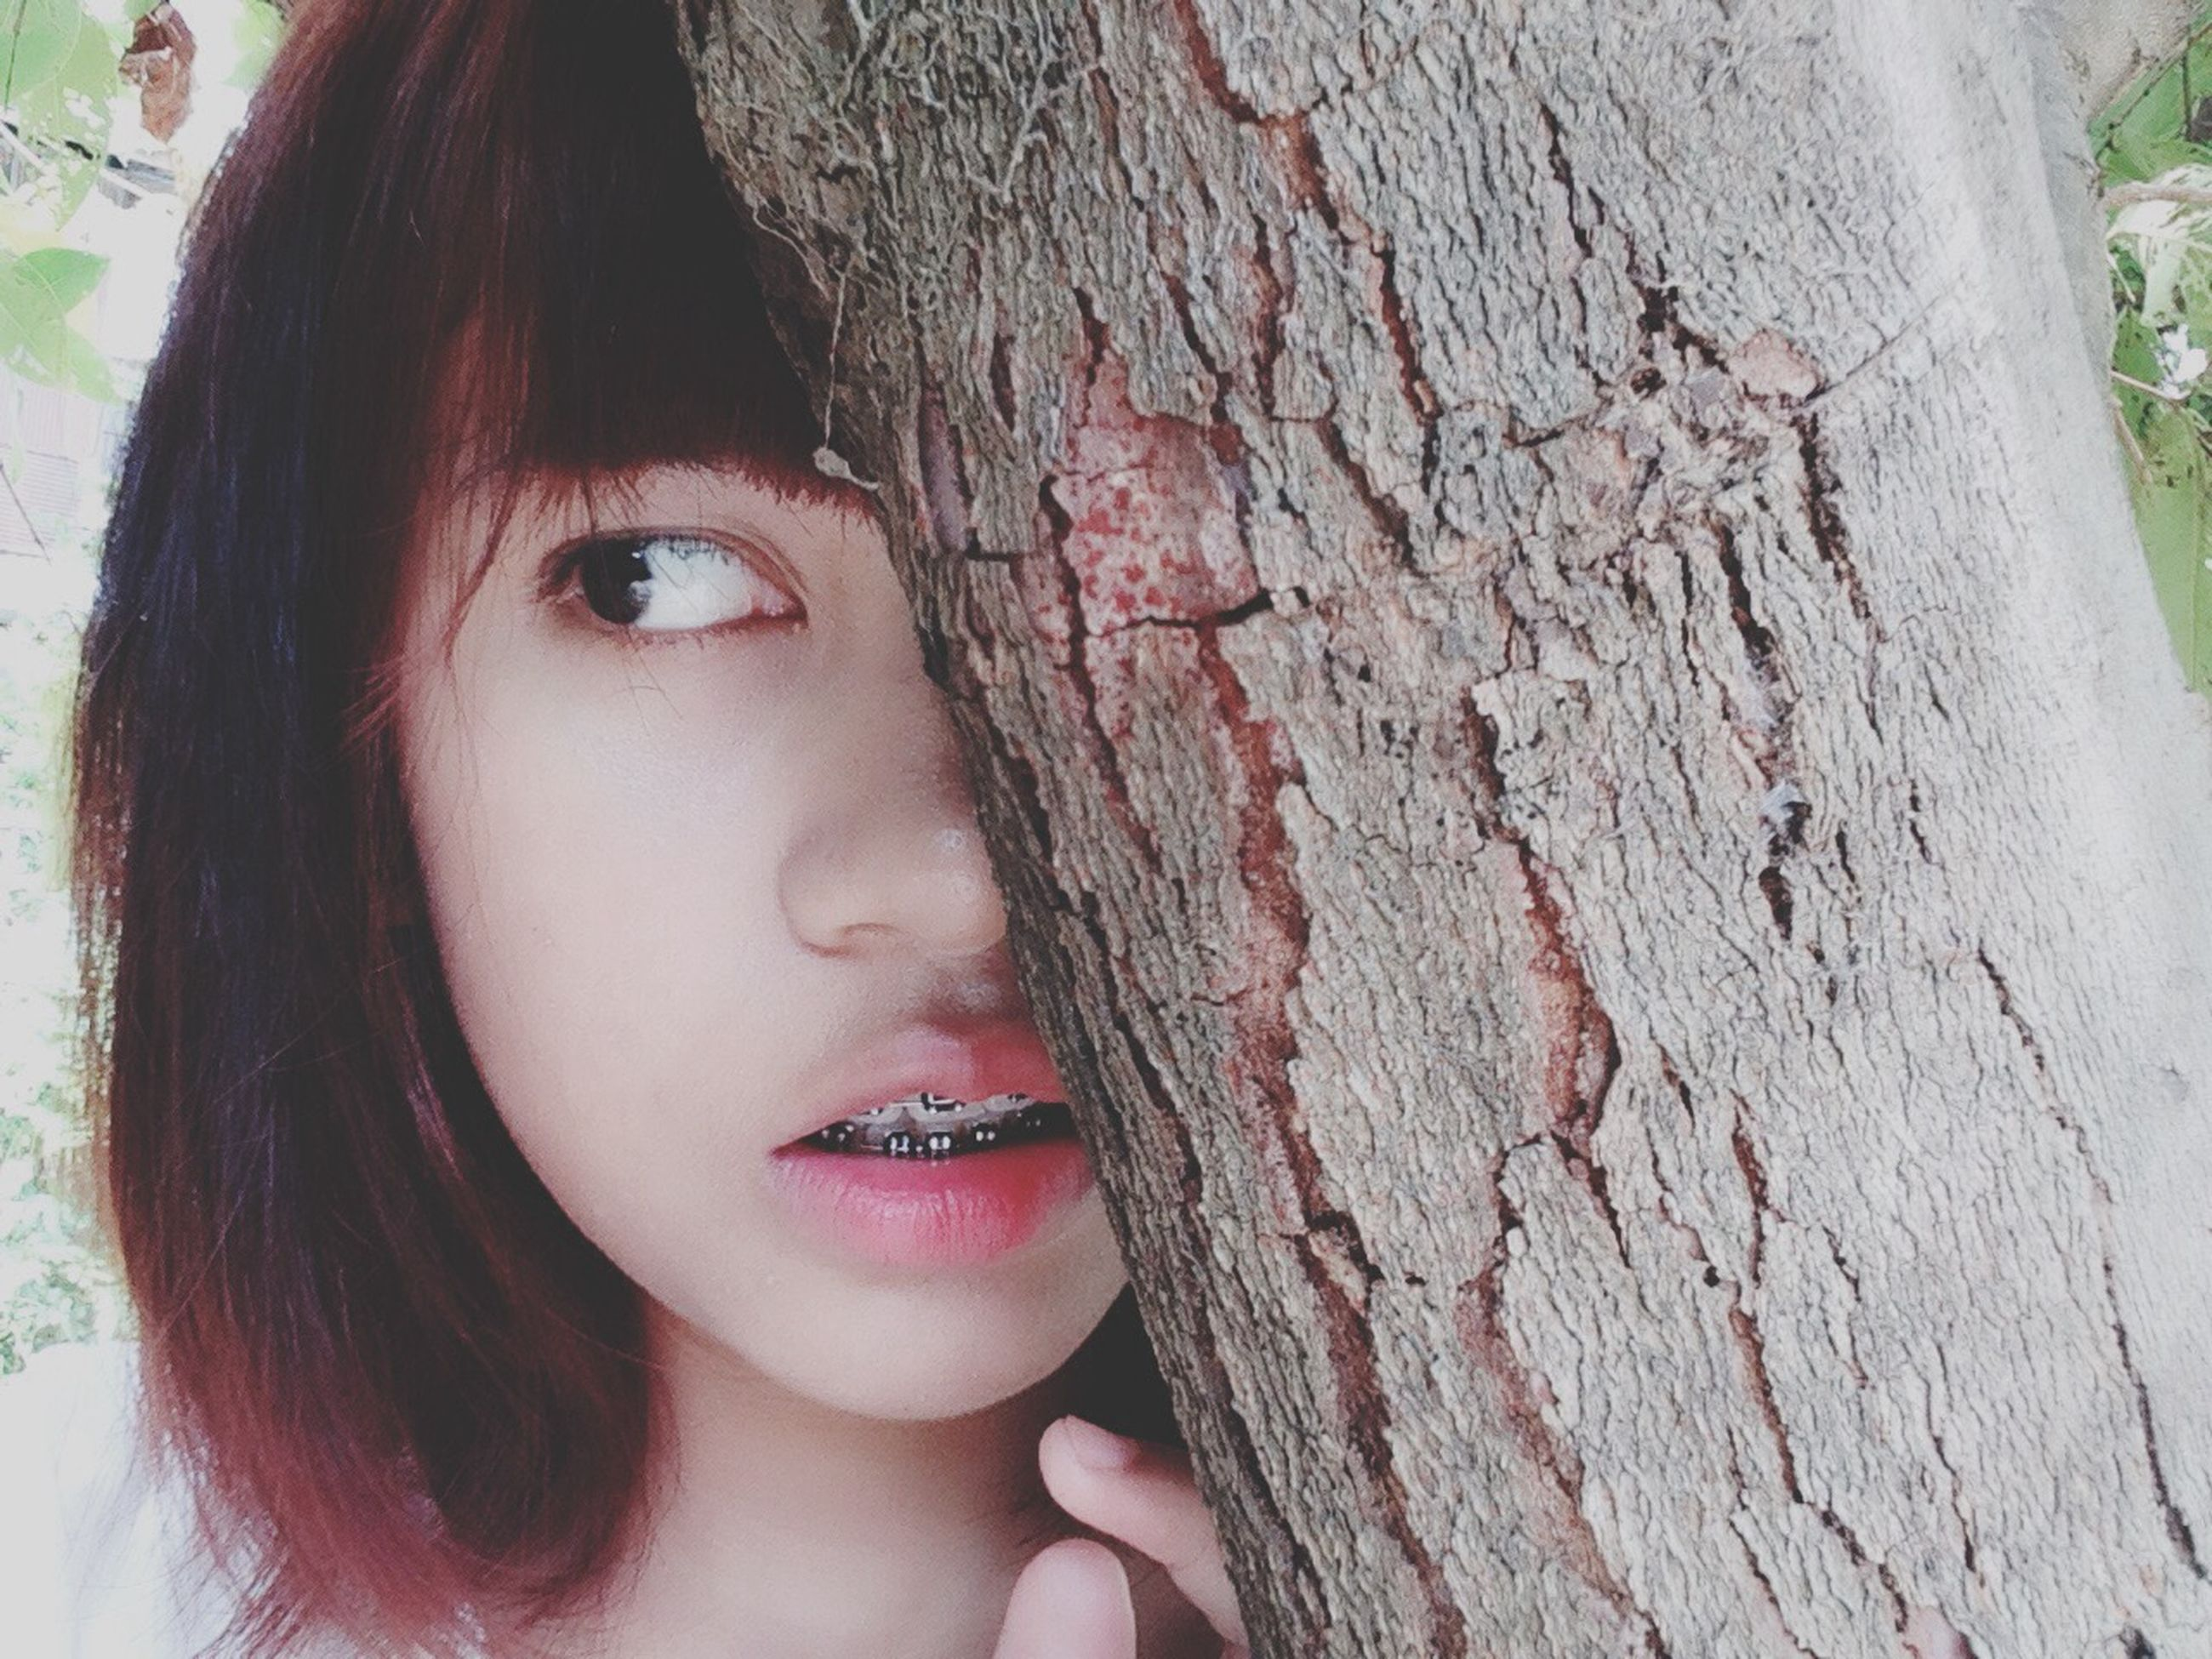 headshot, close-up, portrait, looking at camera, young women, young adult, person, lifestyles, human face, front view, long hair, leisure activity, focus on foreground, tree, tree trunk, part of, beauty